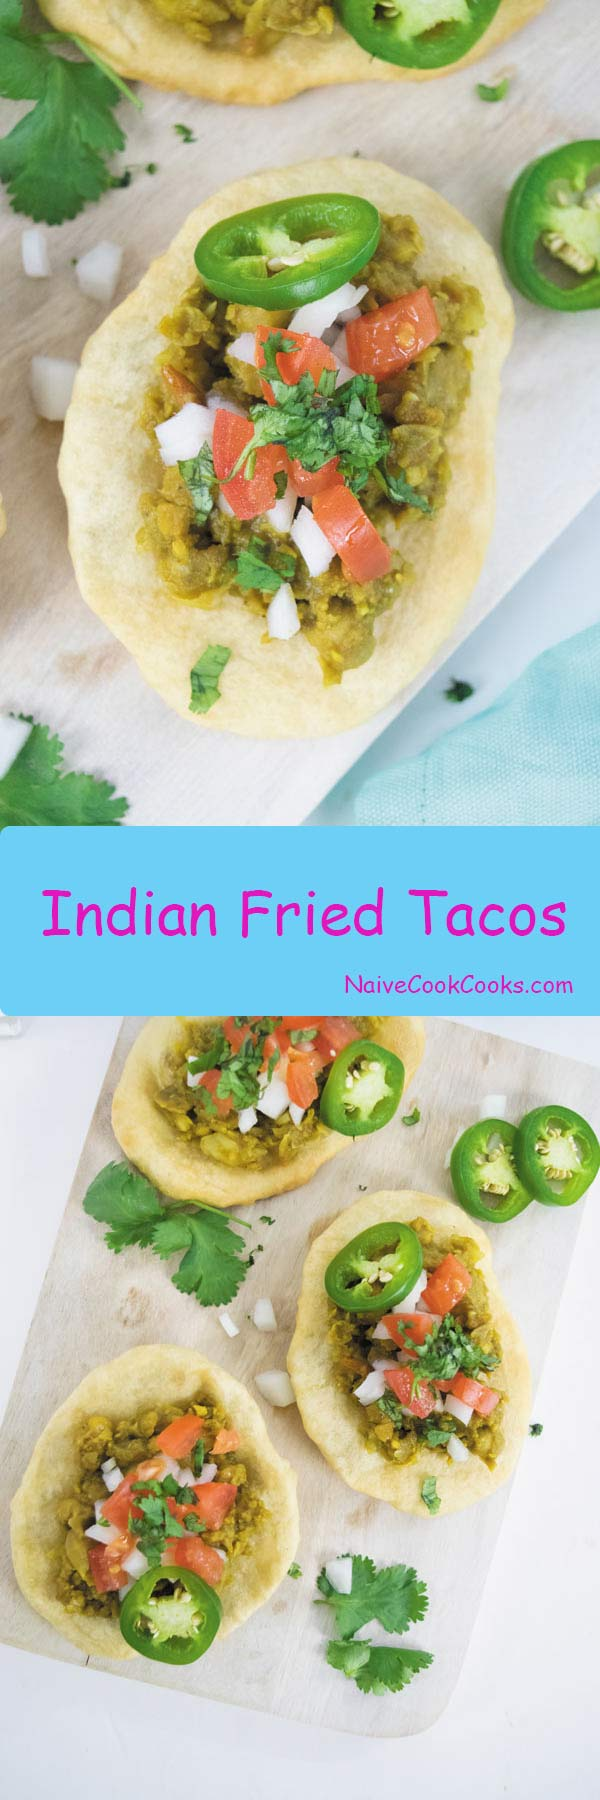 Indian Fried Tacos 1